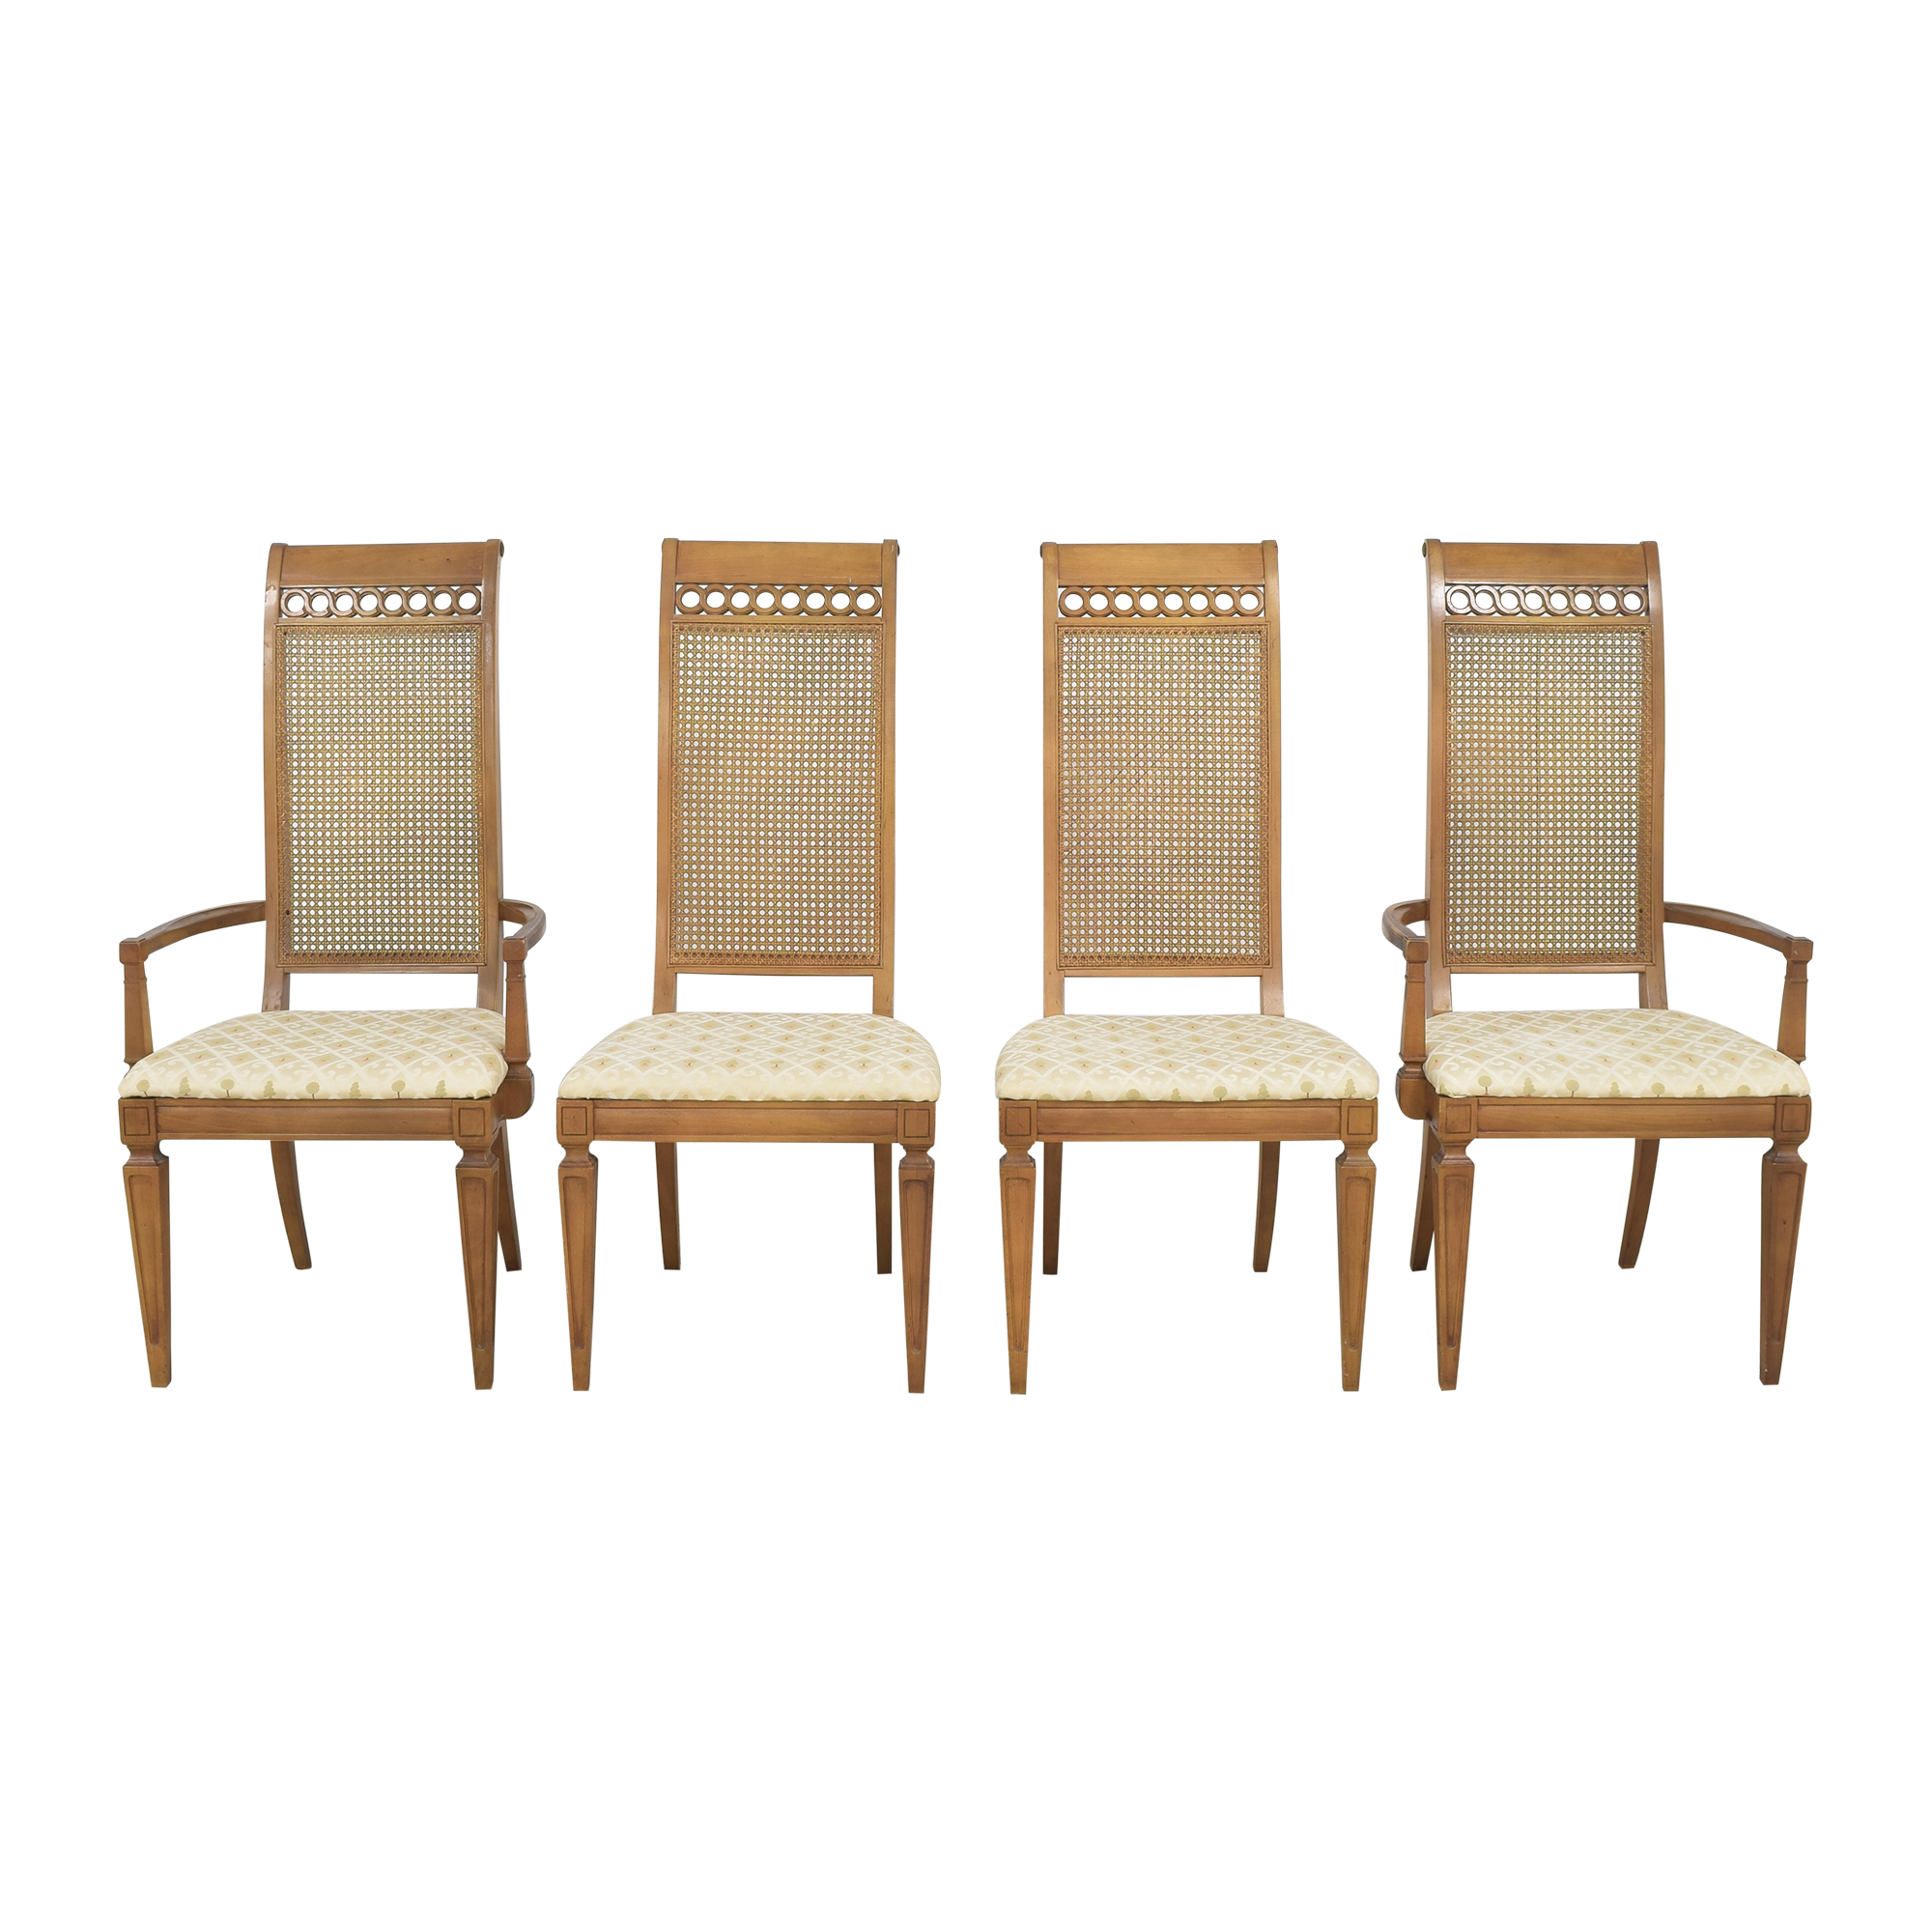 buy Thomasville Bellini Collection Dining Chairs Thomasville Chairs